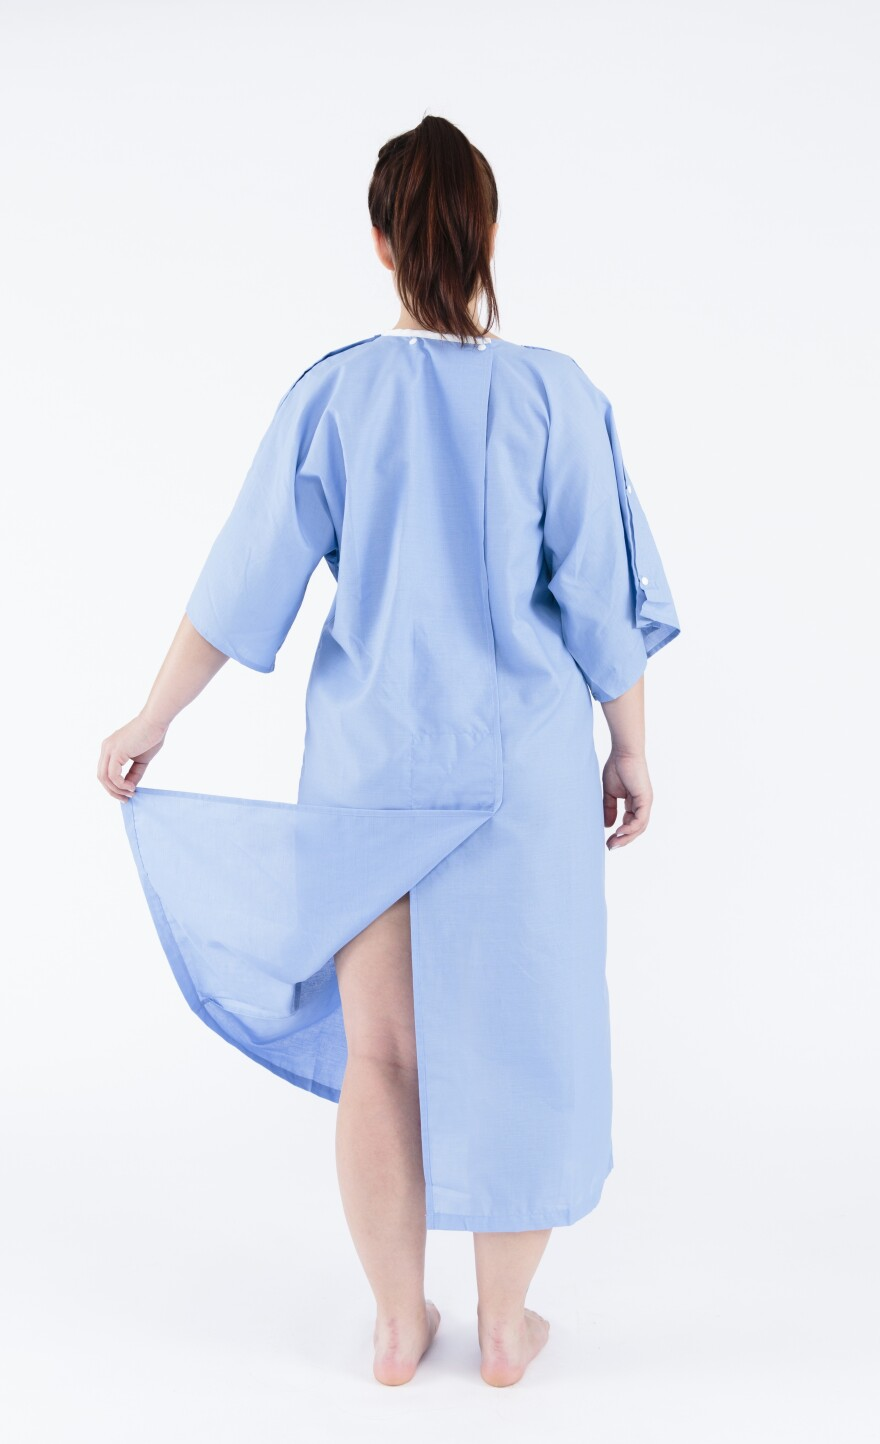 Instead of flimsy ties, the back of the new gown has a flap to cover the patient's behind.